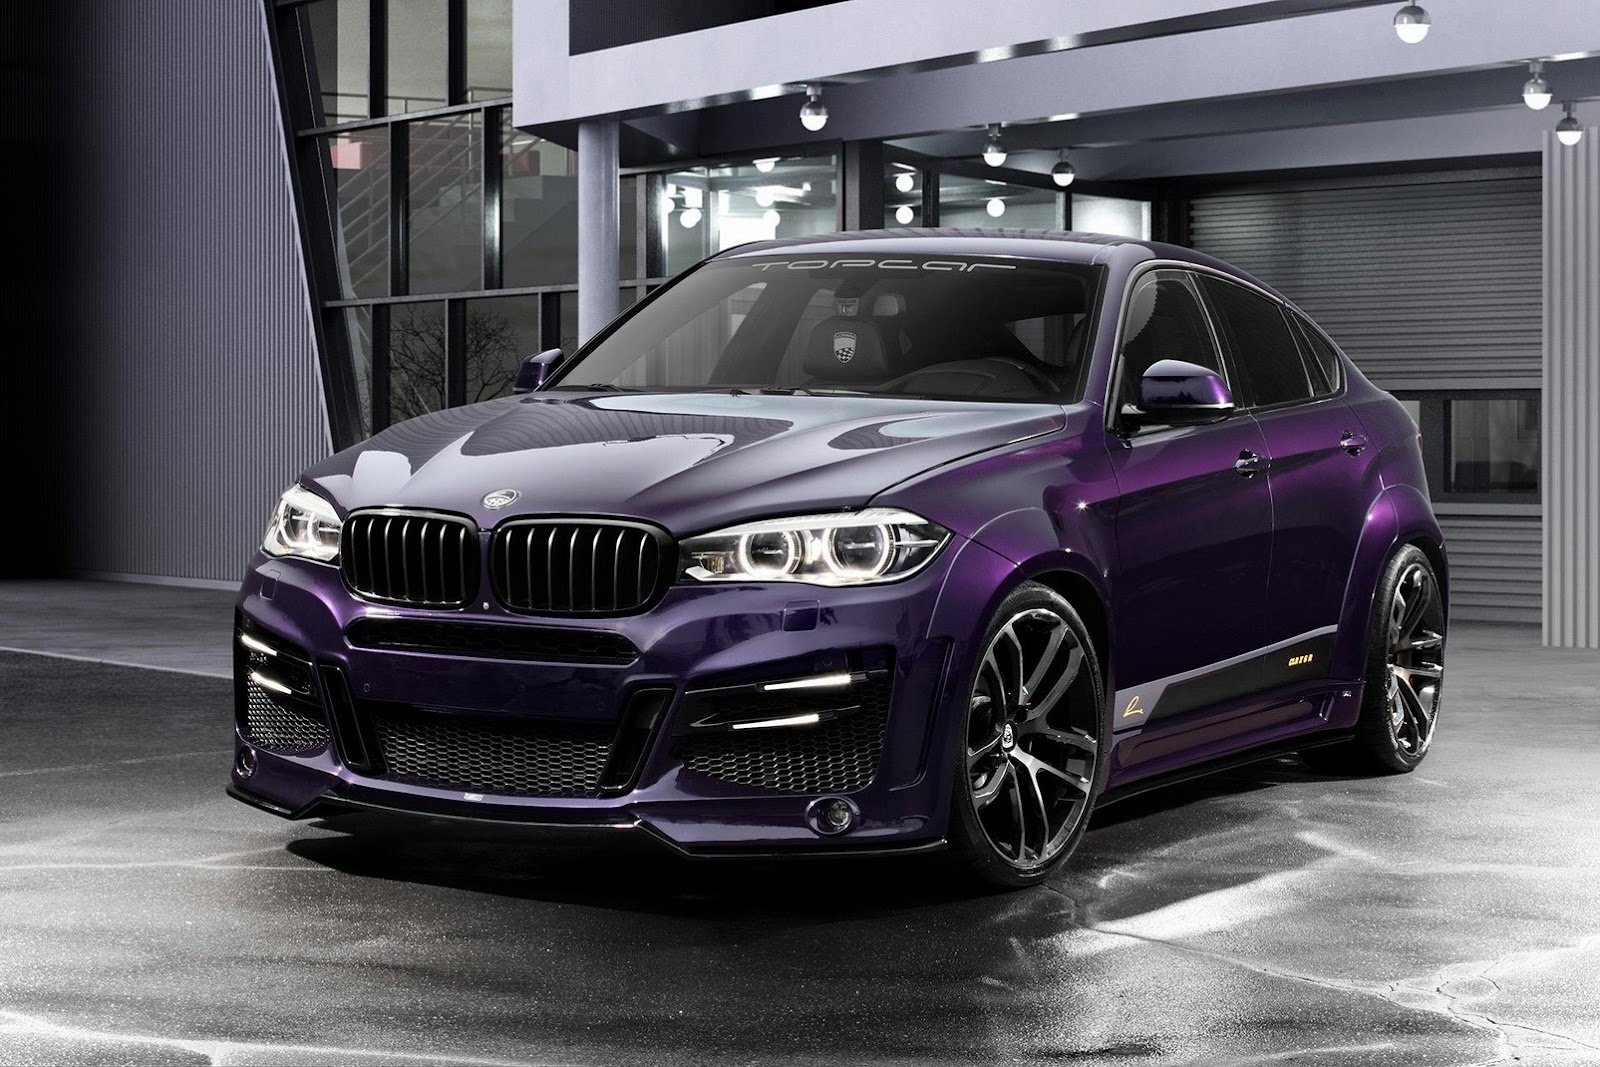 Topcar S Bmw Clr X6 R Coming With 555ps Xdrive50i